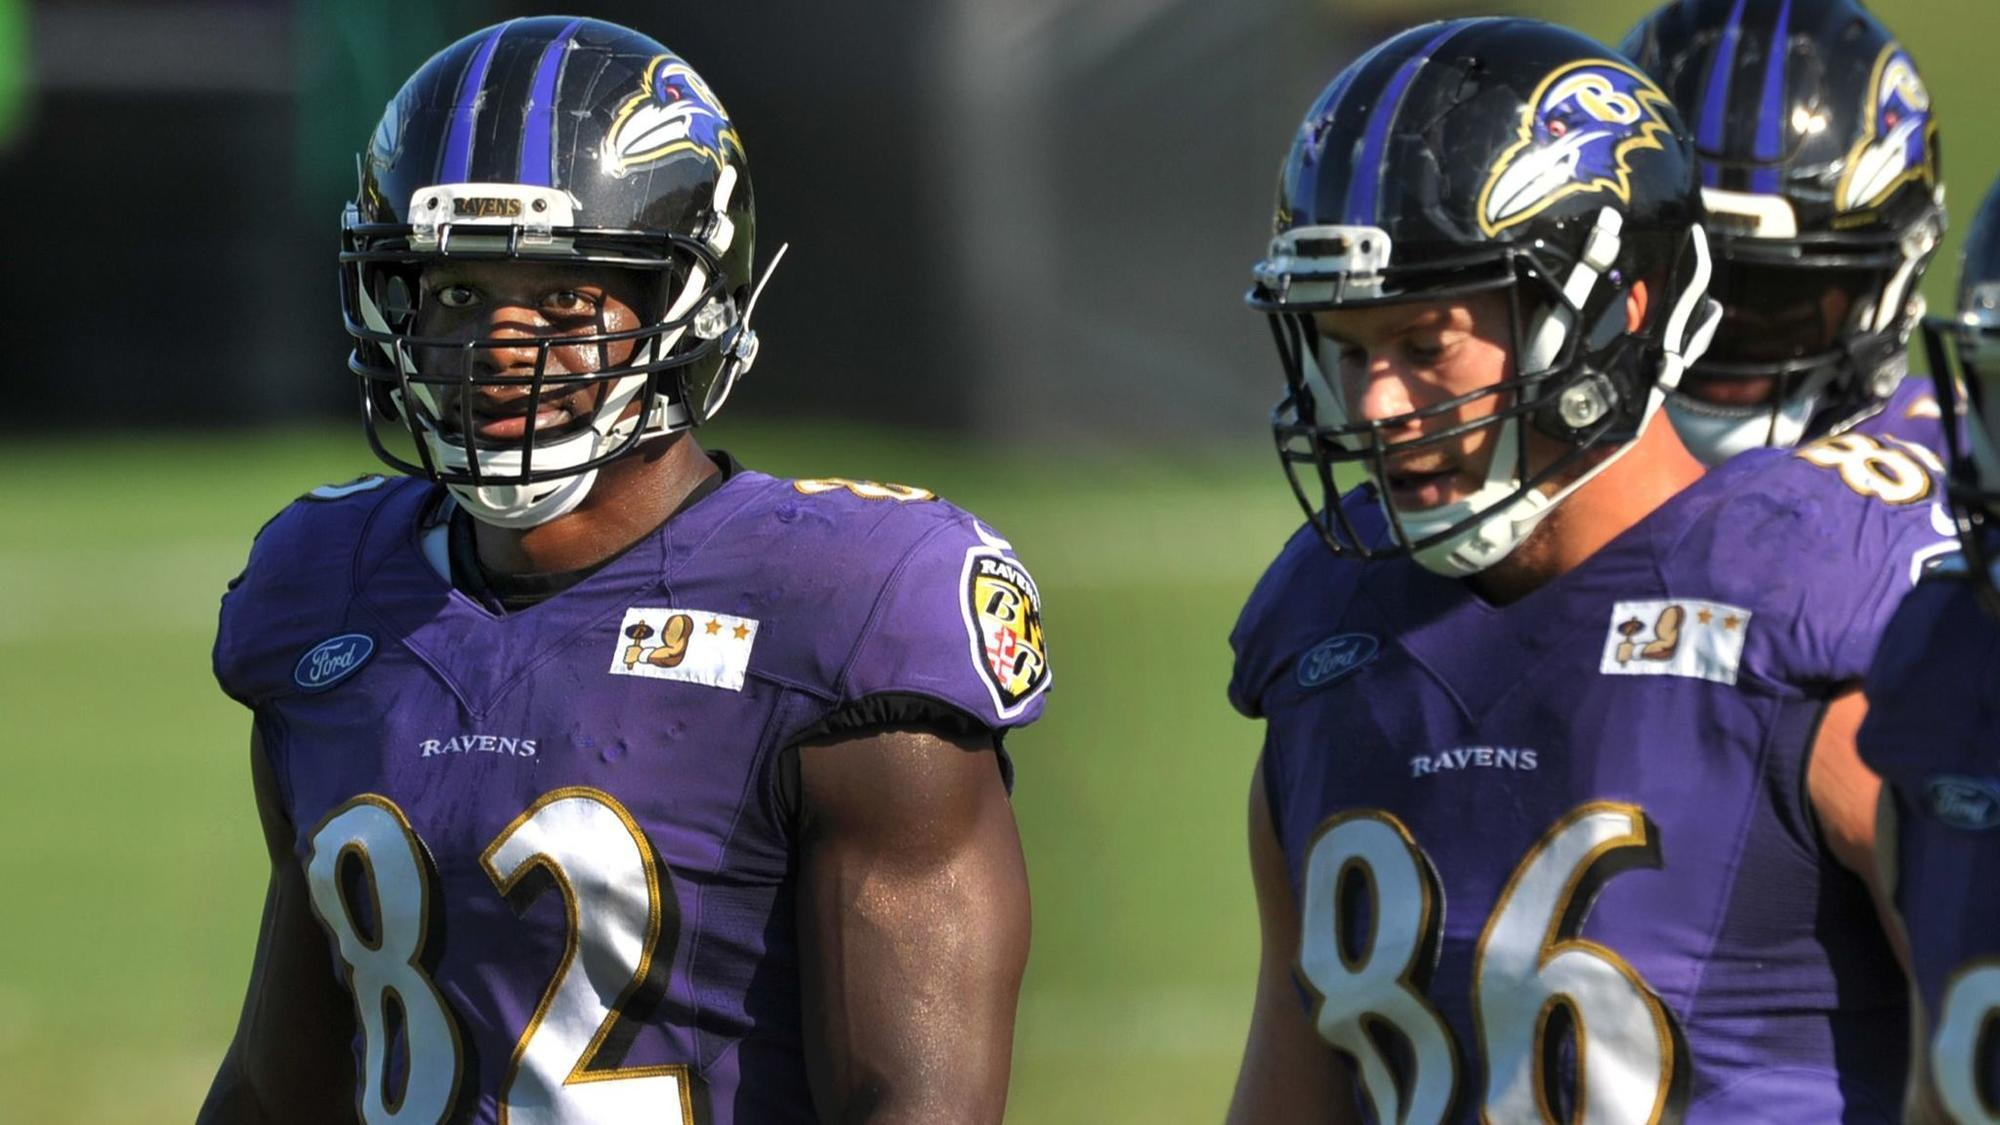 Bs-sp-ravens-looking-for-more-from-tight-ends-20171117